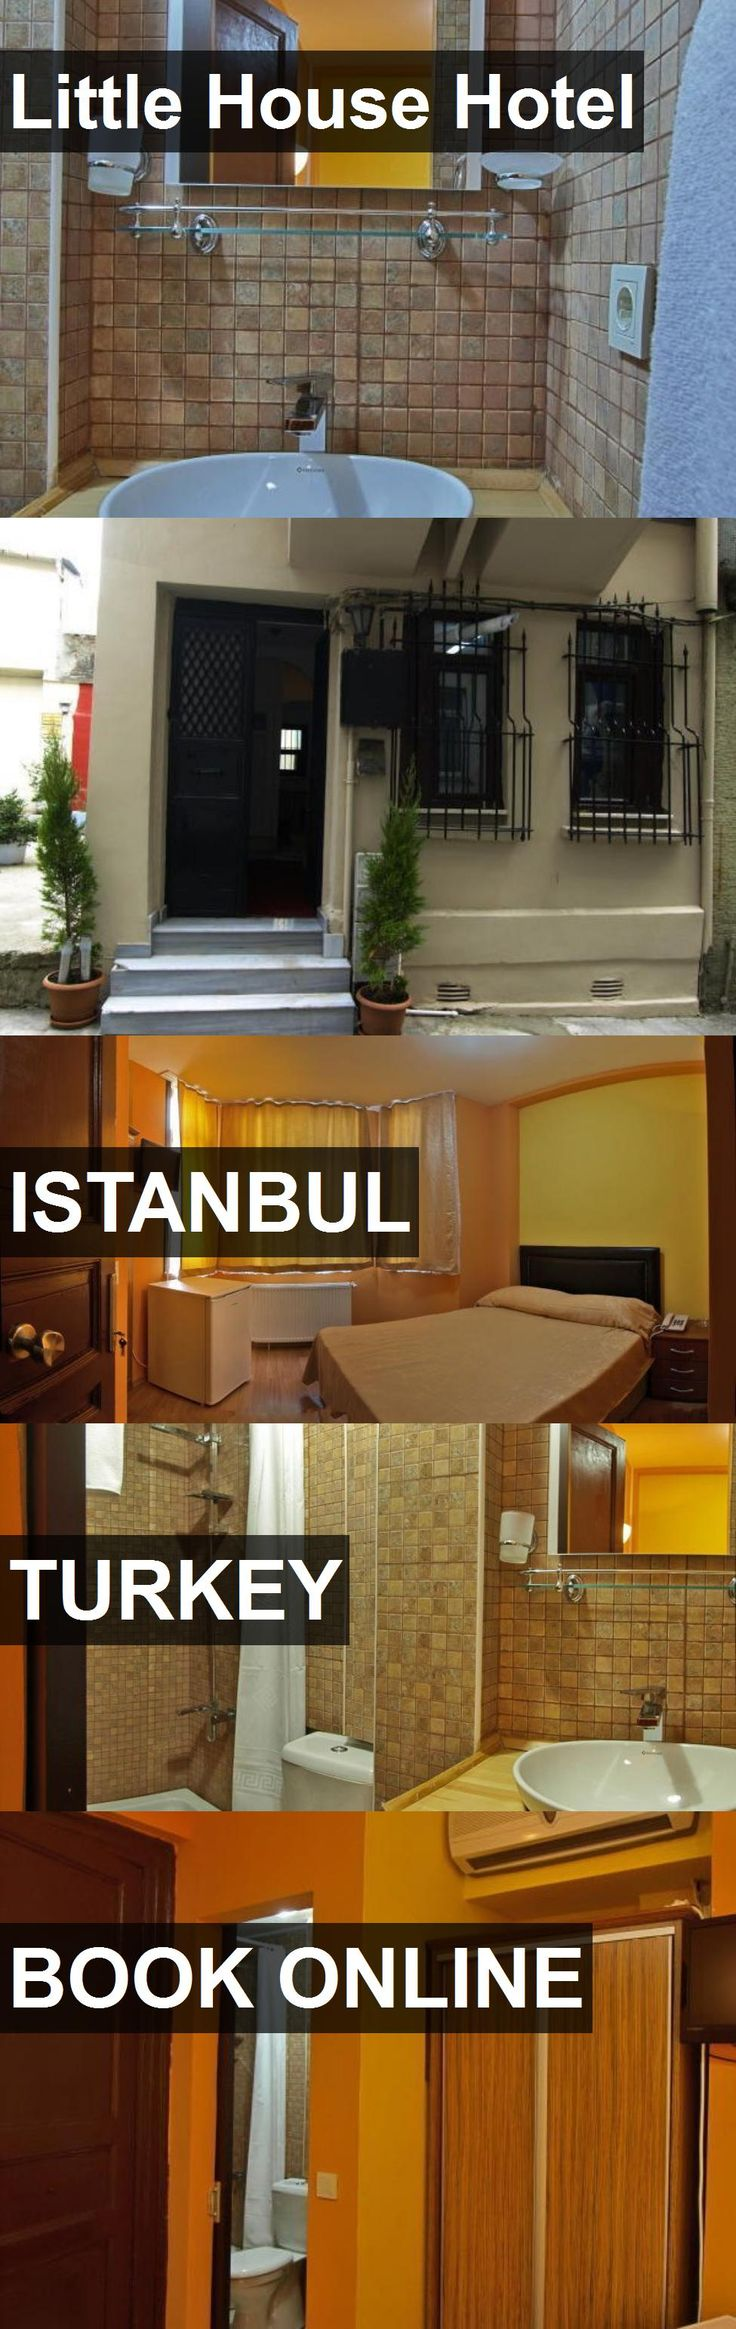 Little House Hotel in Istanbul, Turkey. For more information, photos, reviews and best prices please follow the link. #Turkey #Istanbul #travel #vacation #hotel